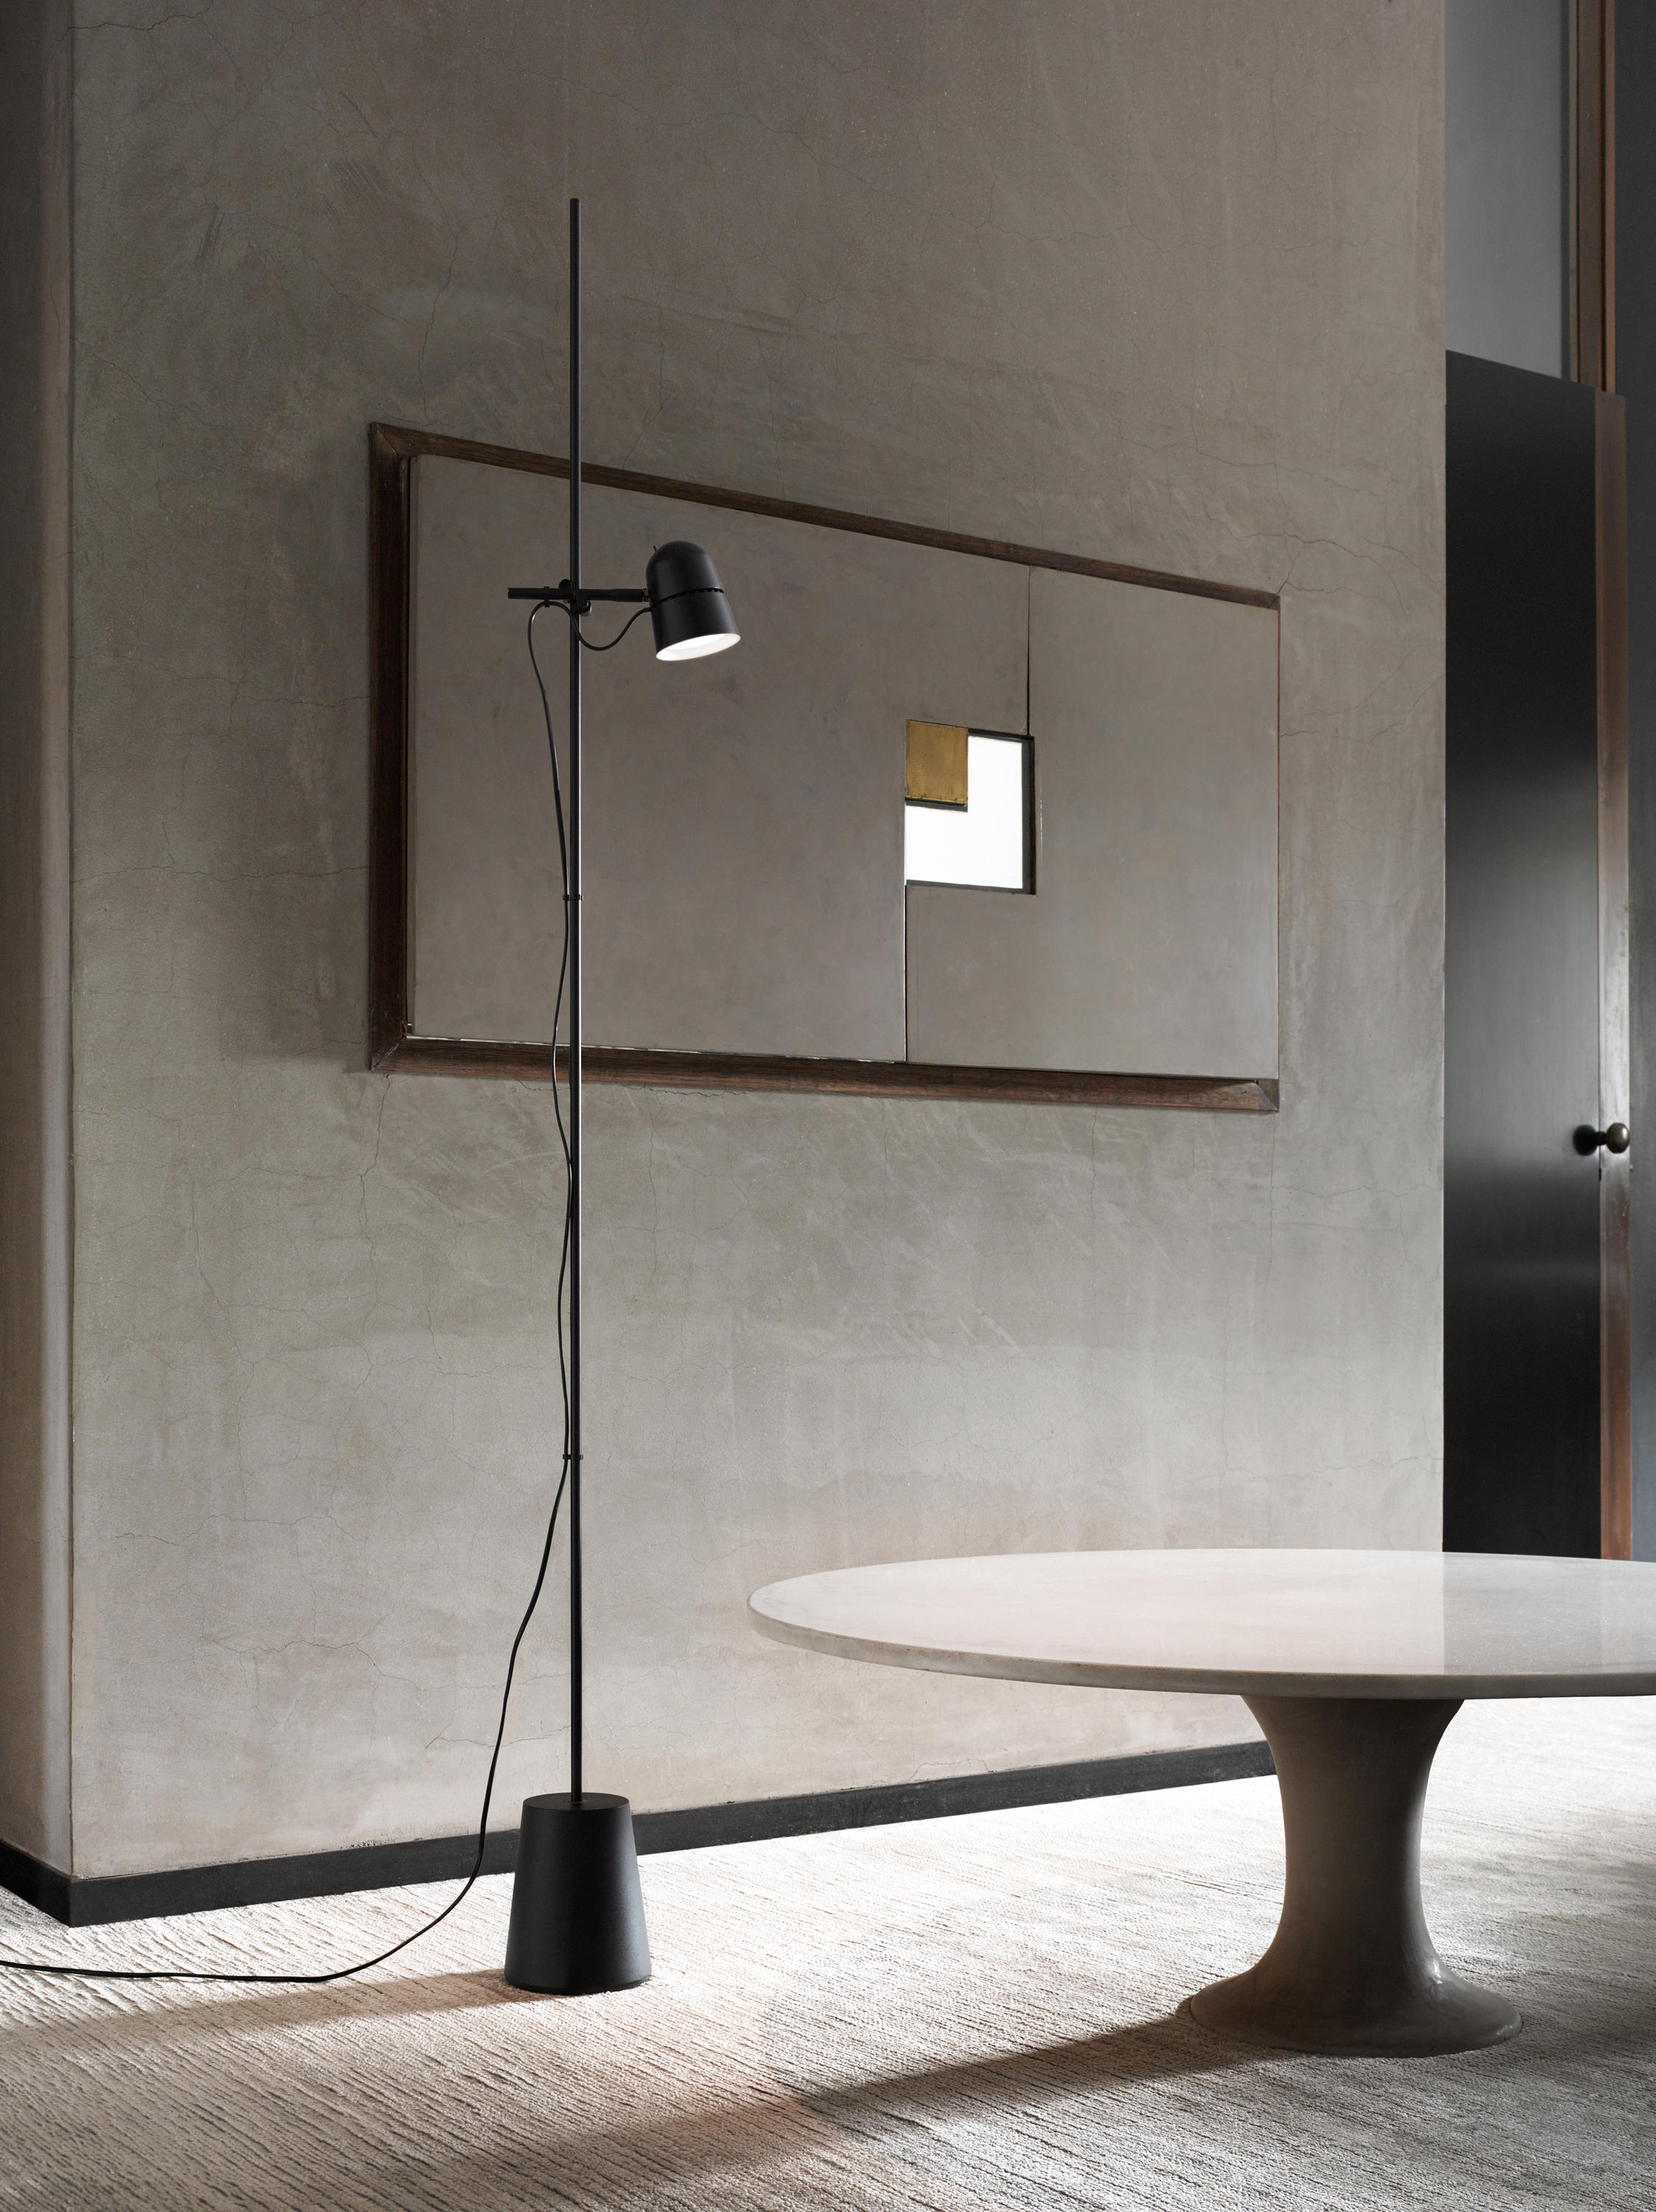 counterbalance general lighting from luceplan architonic. Black Bedroom Furniture Sets. Home Design Ideas